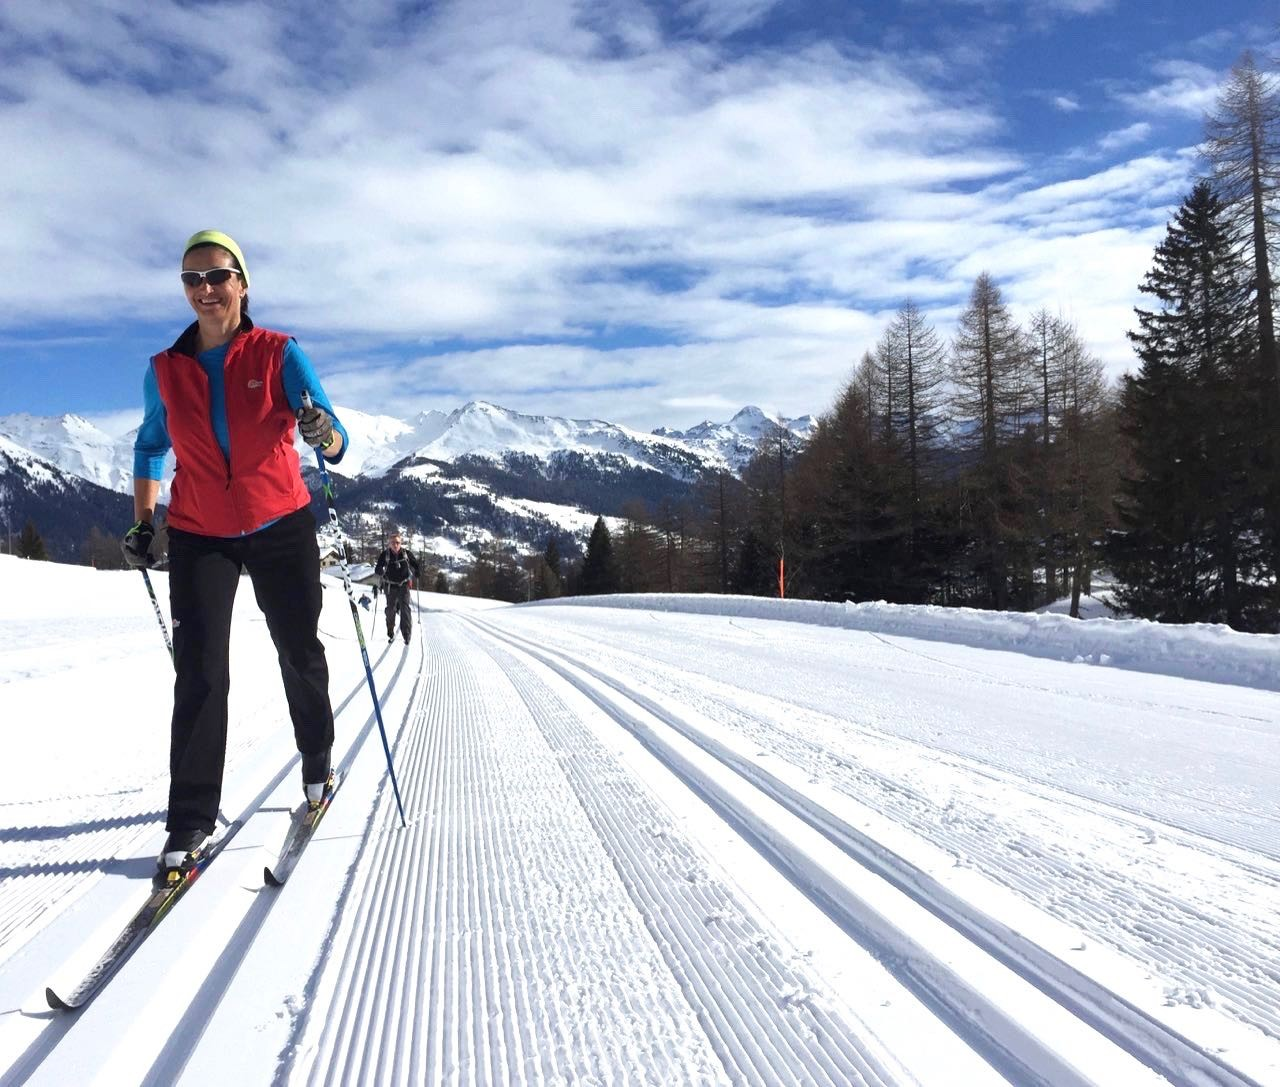 Perfect snow conditions for cross-country skiing. The ski tracks are 'pressed' each day by grooming machines creating a smooth surface.